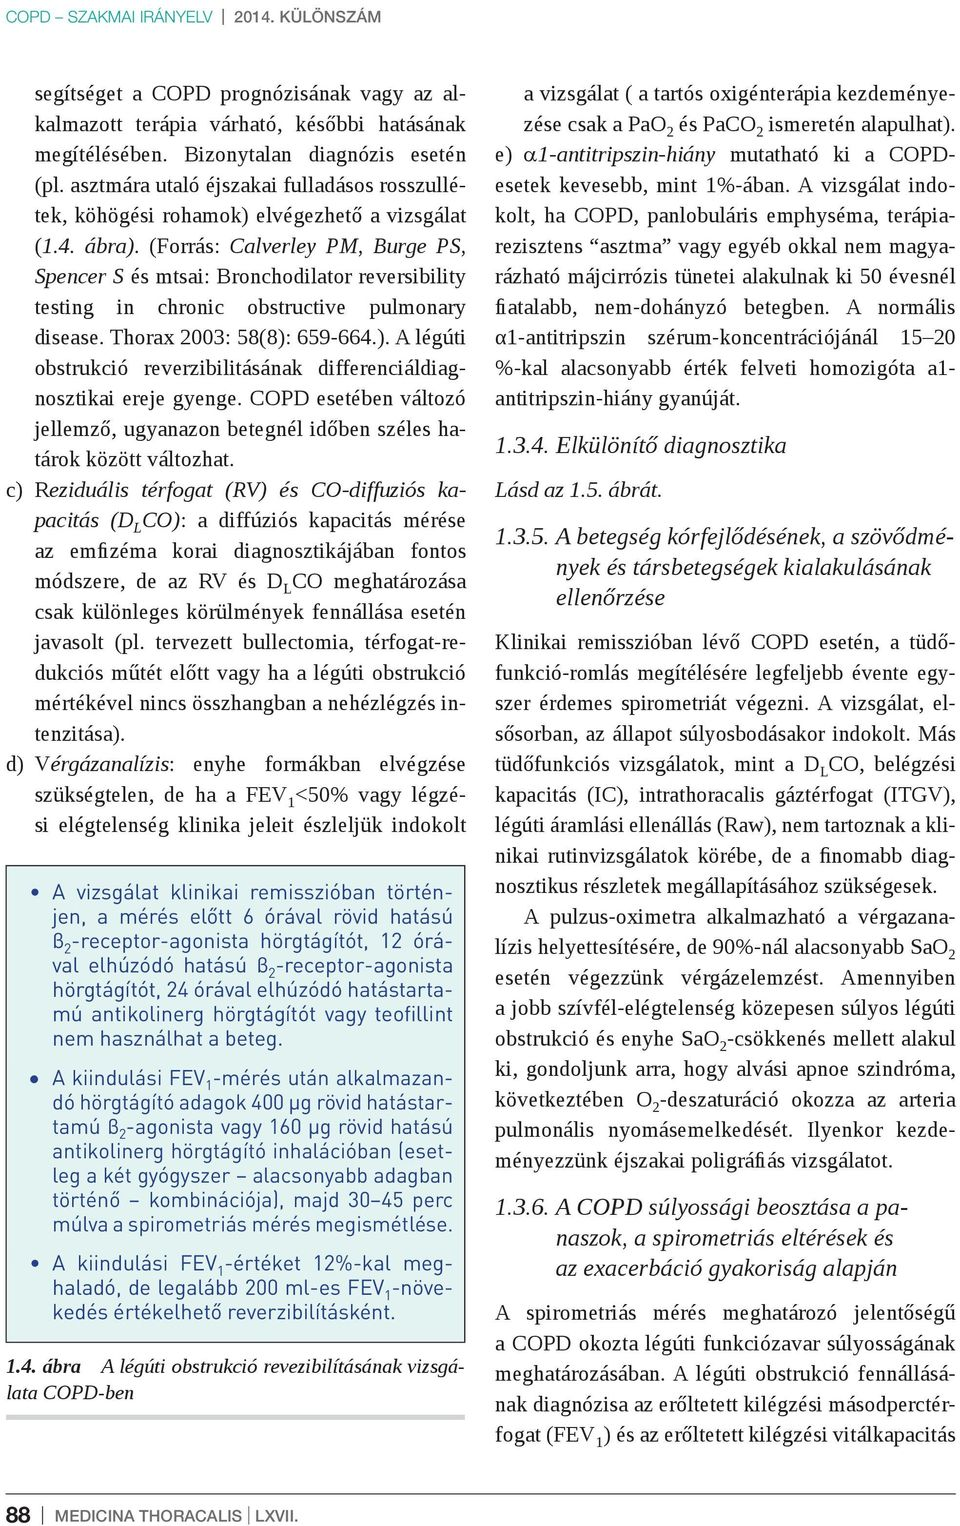 (Forrás: Calverley PM, Burge PS, Spencer S és mtsai: Bronchodilator reversibility testing in chronic obstructive pulmonary disease. Thorax 2003: 58(8):